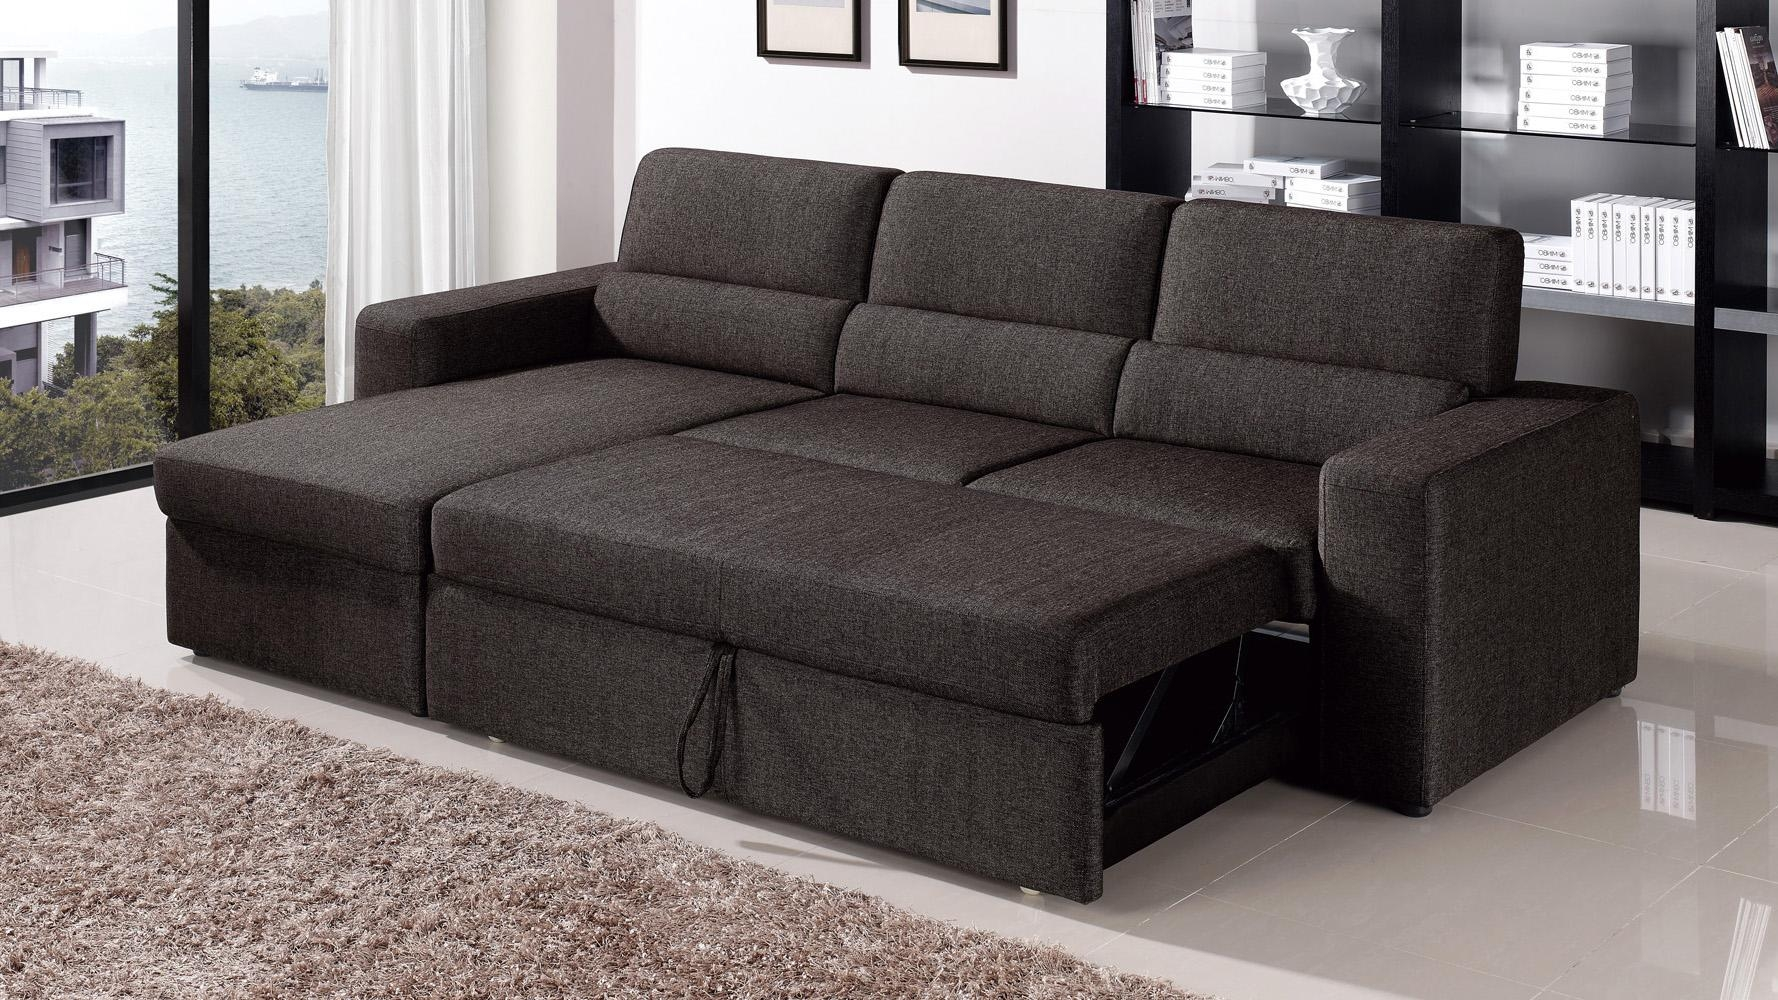 Black/brown Clubber Sleeper Sectional Sofa | Zuri Furniture Pertaining To Sectional Sleeper Sofas With Chaise (Image 5 of 20)